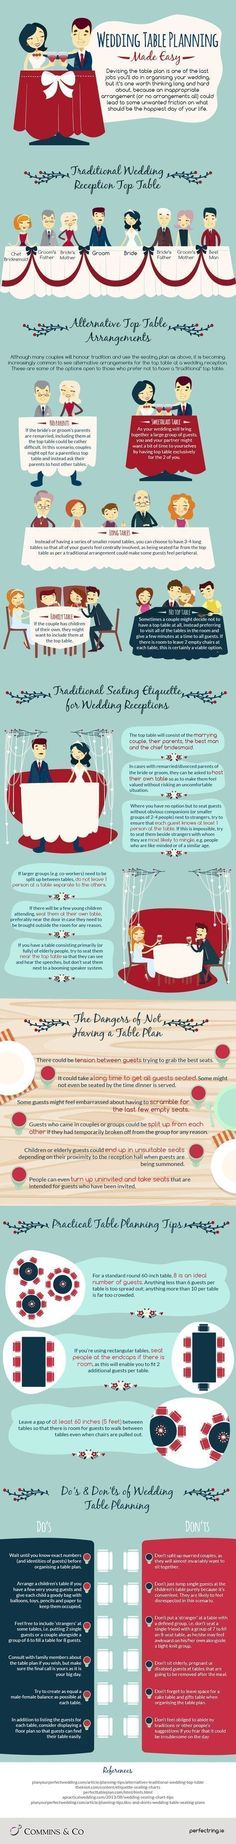 This cool infographic answers every question you have about planning your wedding table seating arrangements. #weddingplanninginfographic #weddingtips